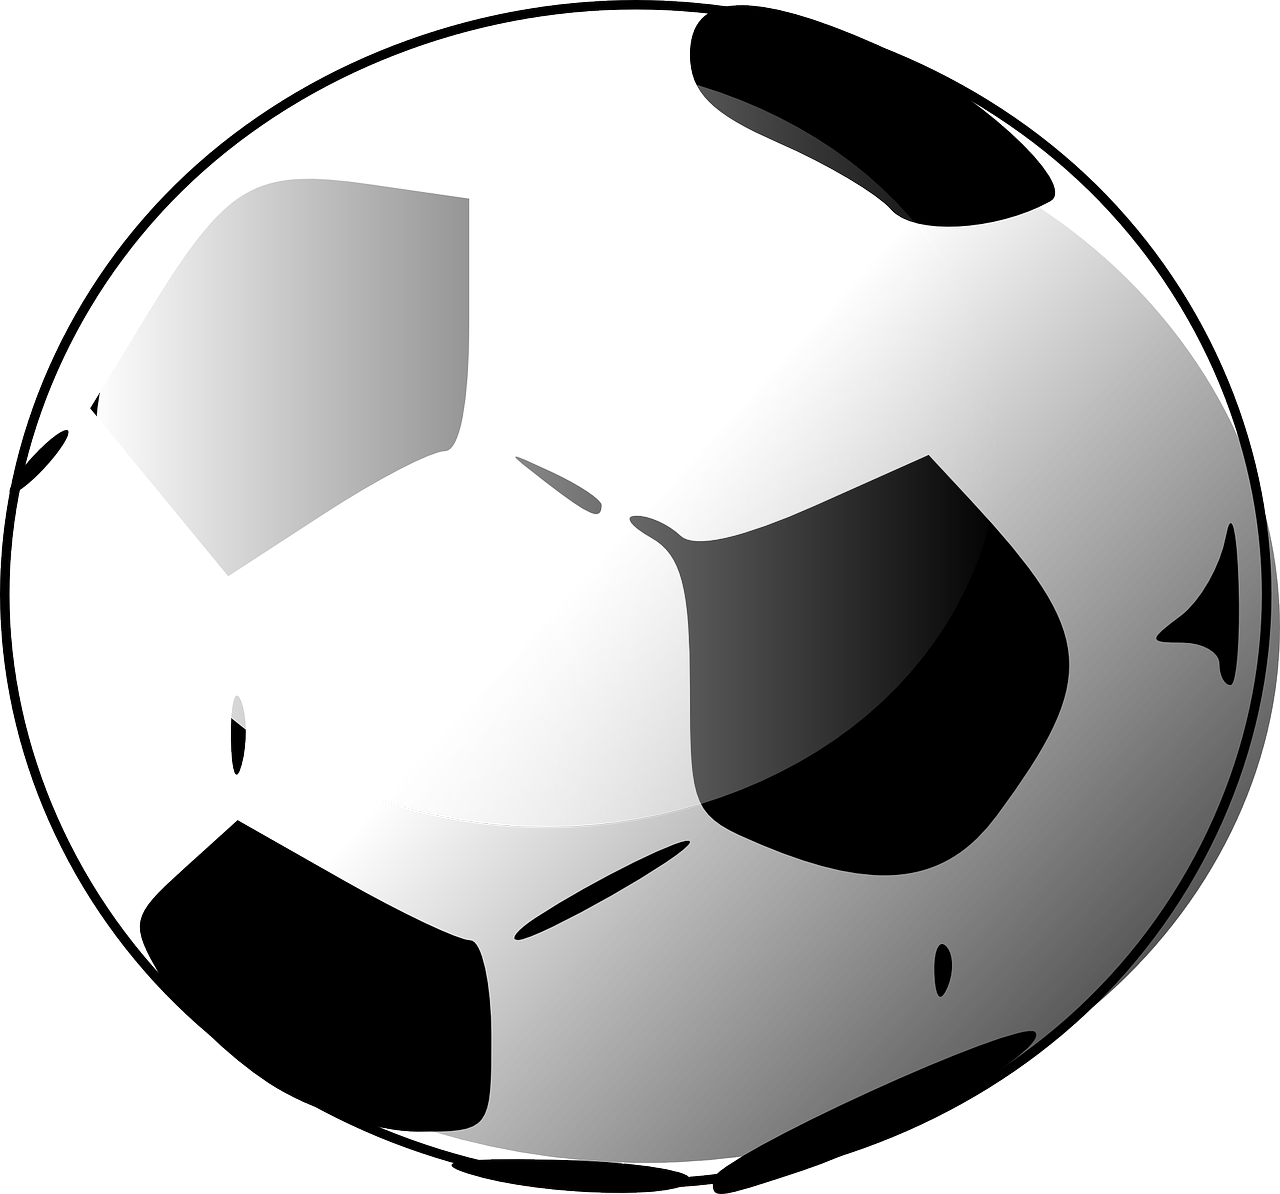 soccer football ball free picture